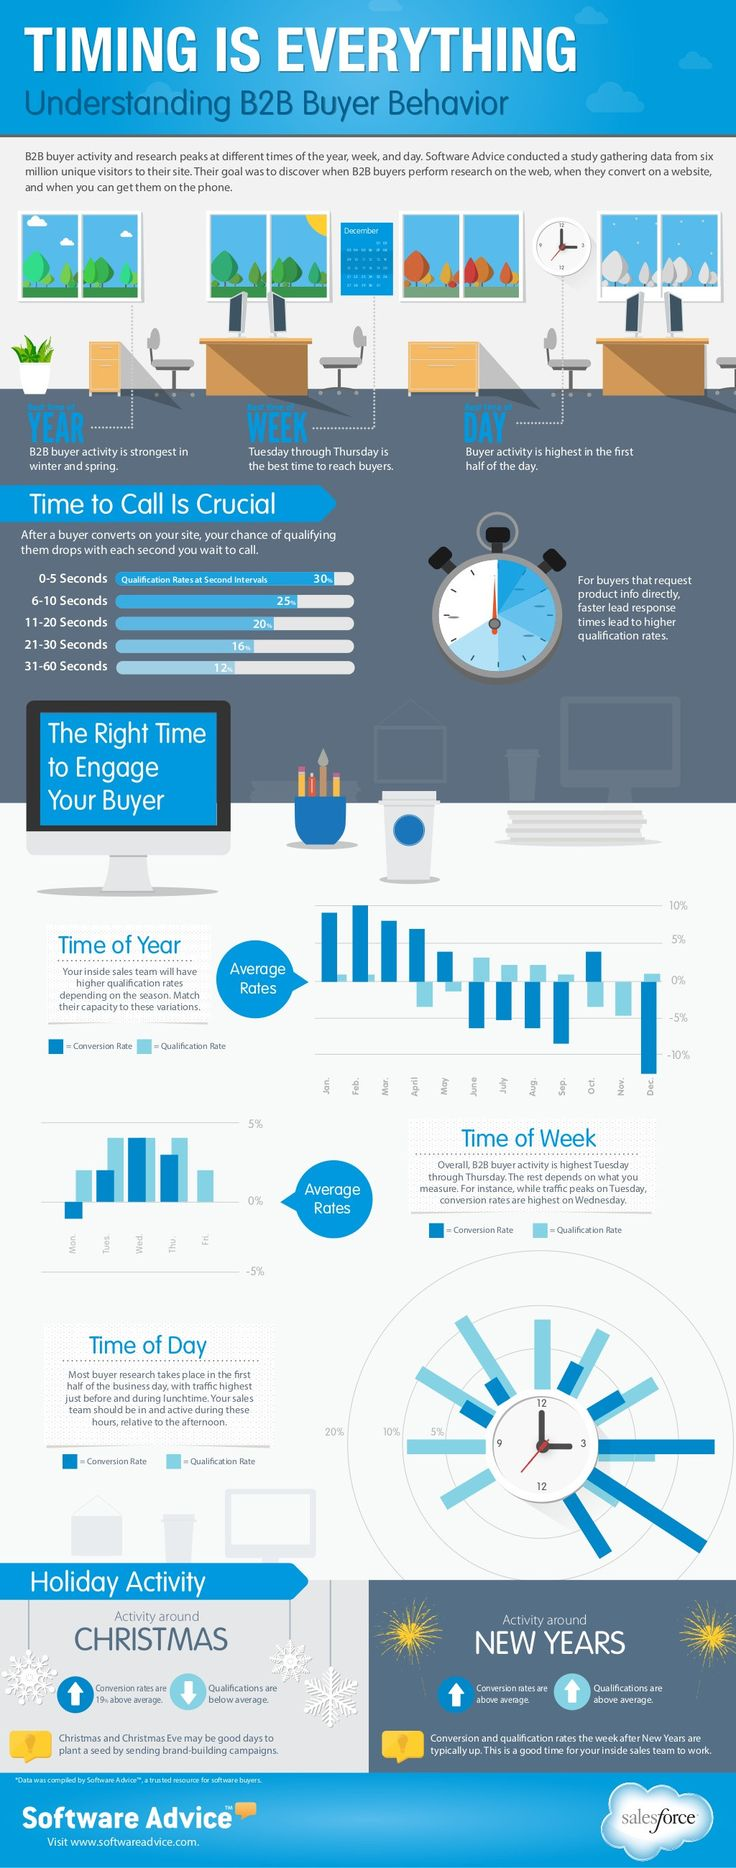 Timing is Everything Understanding B2B Buyer Behavior   #infographic #Business #B2B